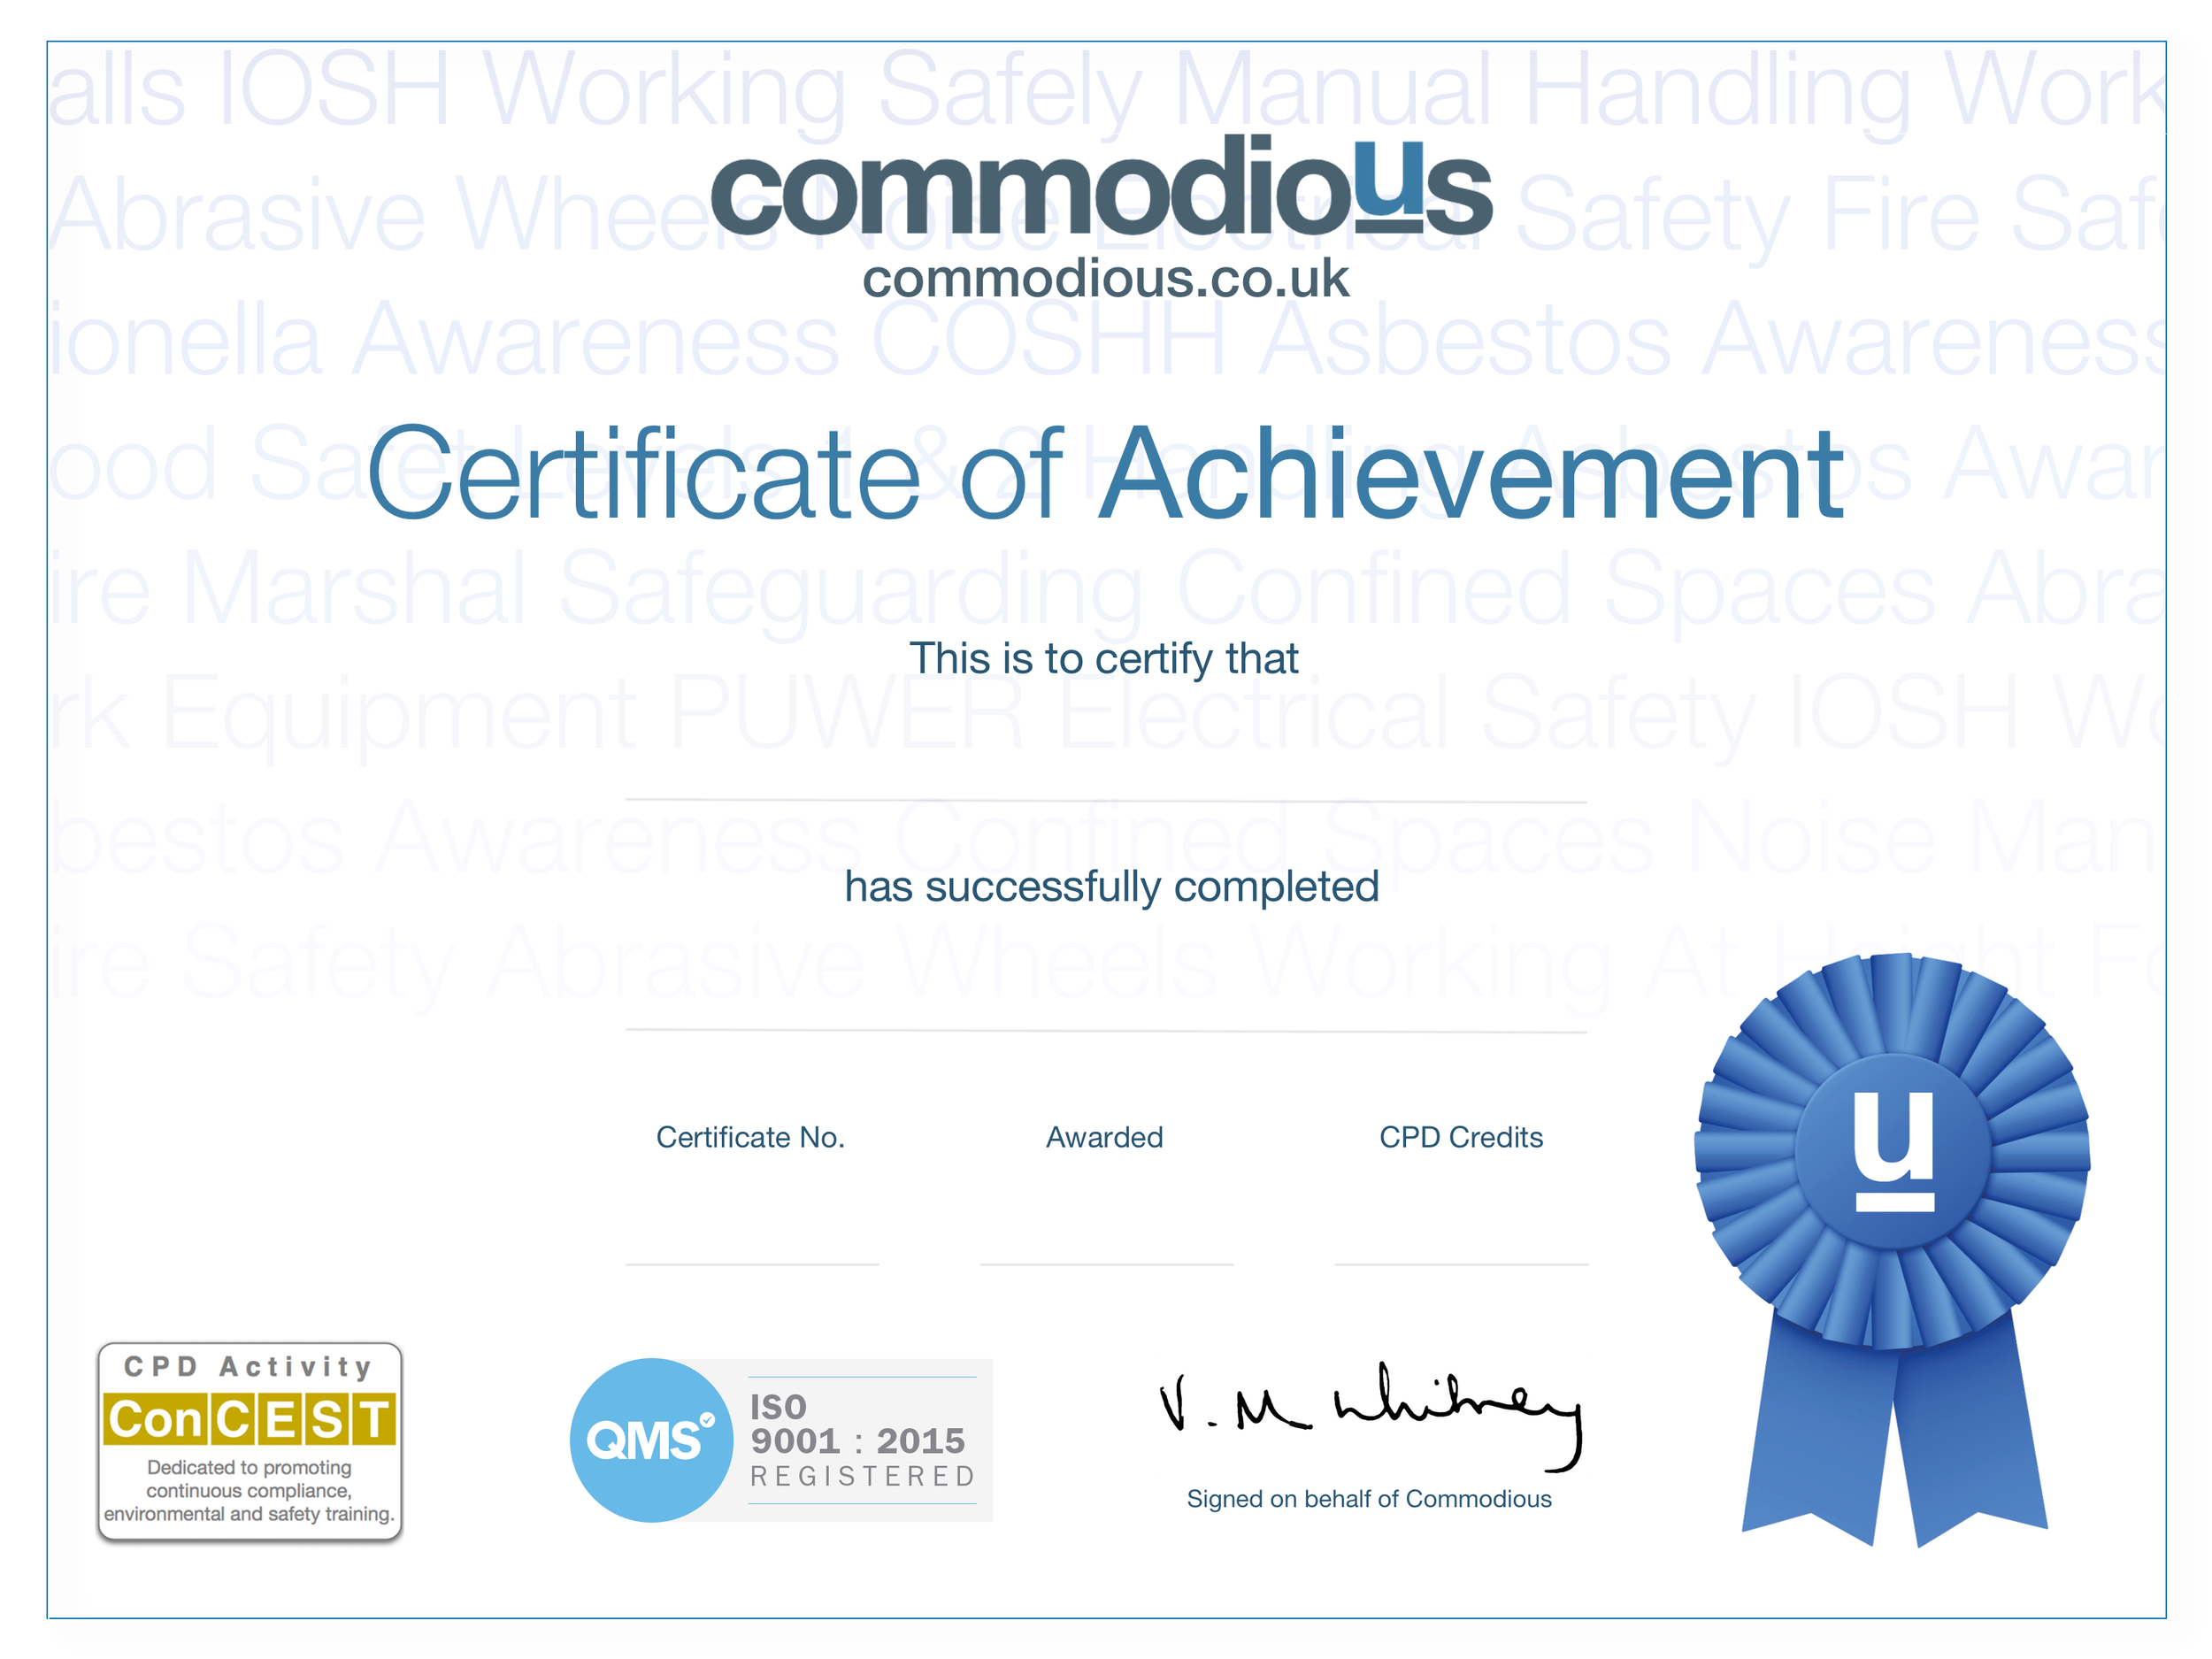 Commodious ConCEST QMS CERTIFICATE